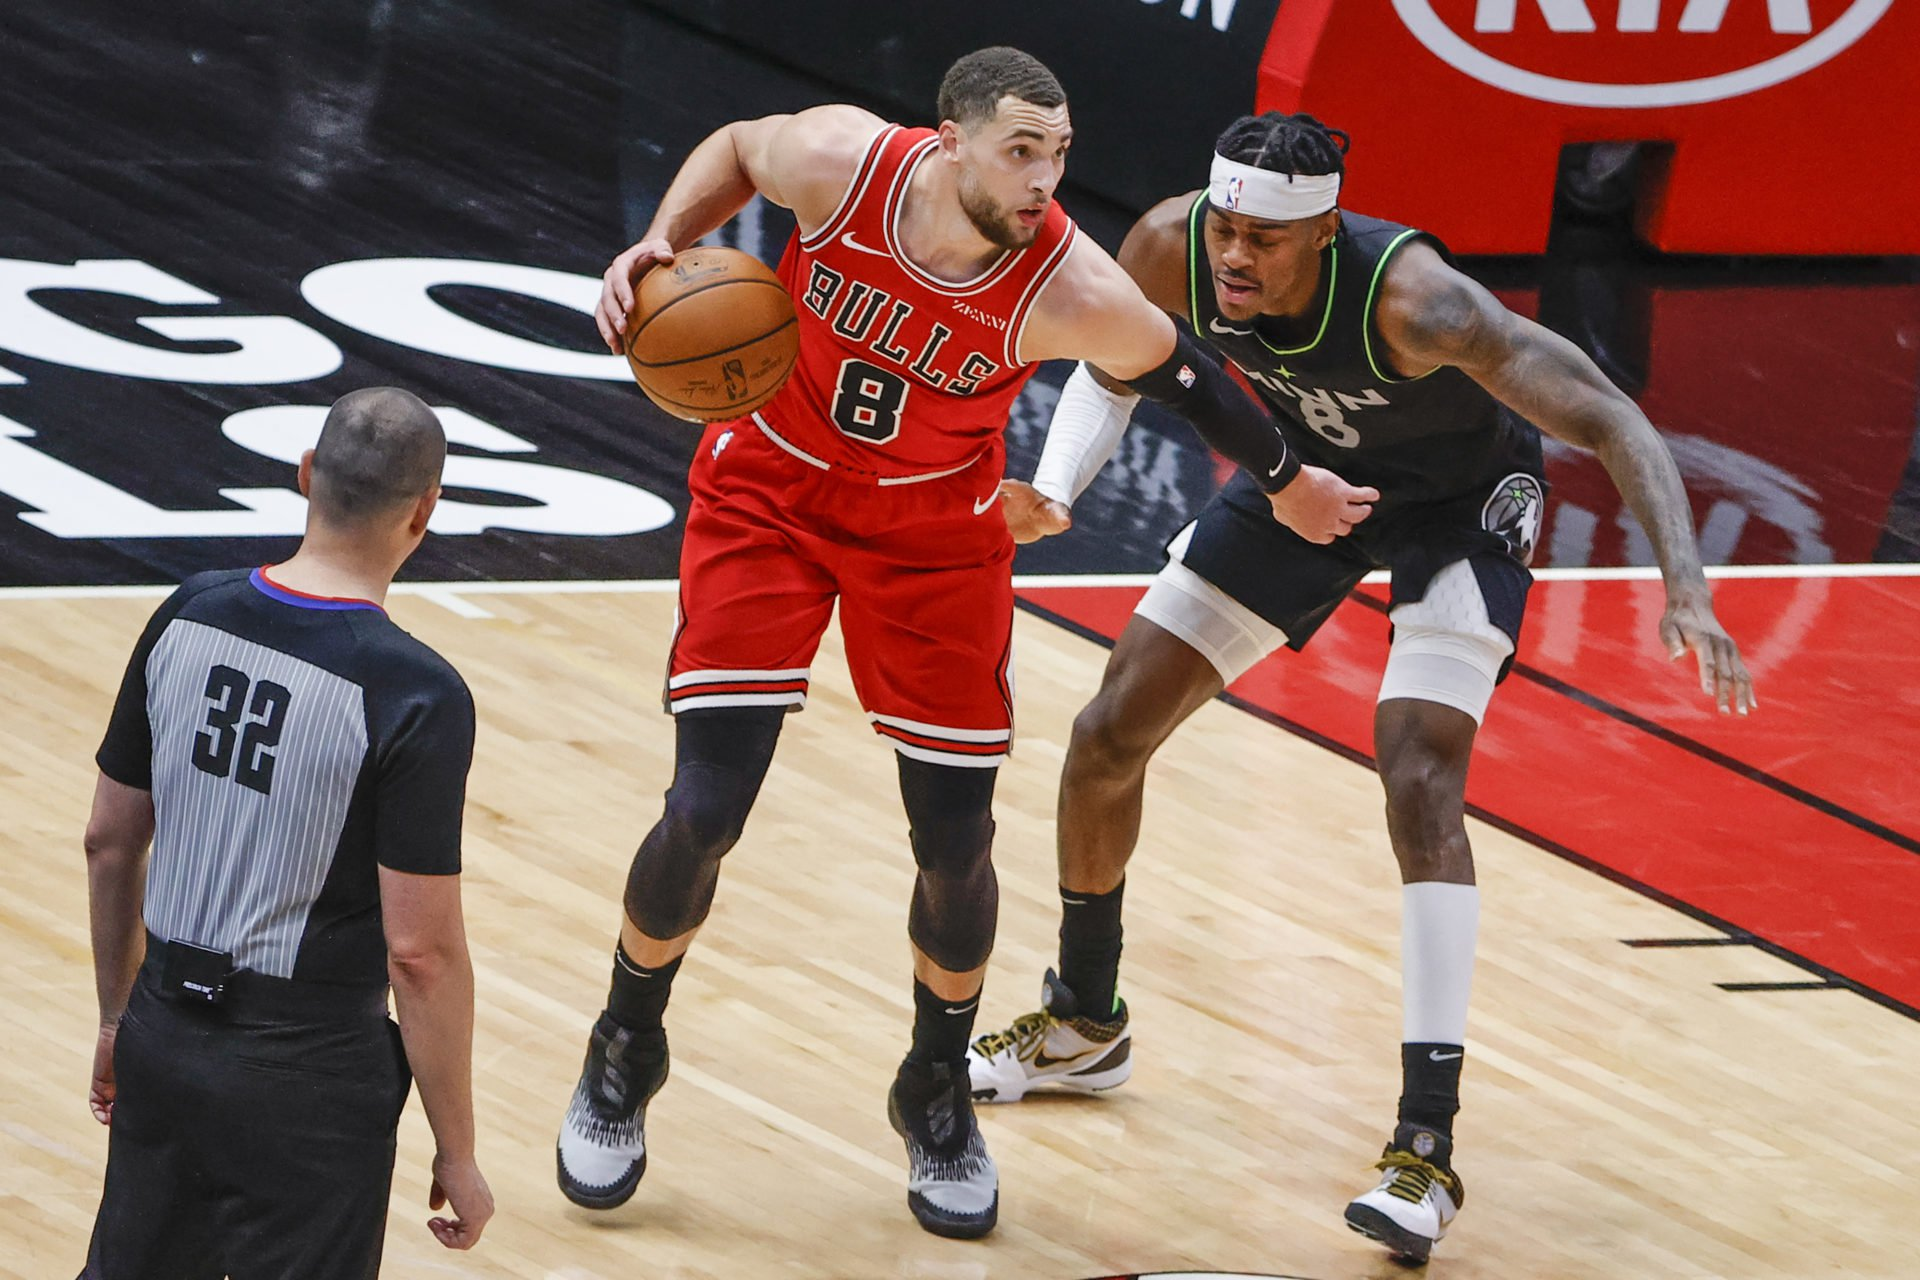 Feb 24, 2021; Chicago, Illinois, USA; Chicago Bulls guard Zach LaVine (8) is defended by Minnesota Timberwolves forward Jarred Vanderbilt (8) during the second half of an NBA game at United Center. Mandatory Credit: Kamil Krzaczynski-USA TODAY Sports